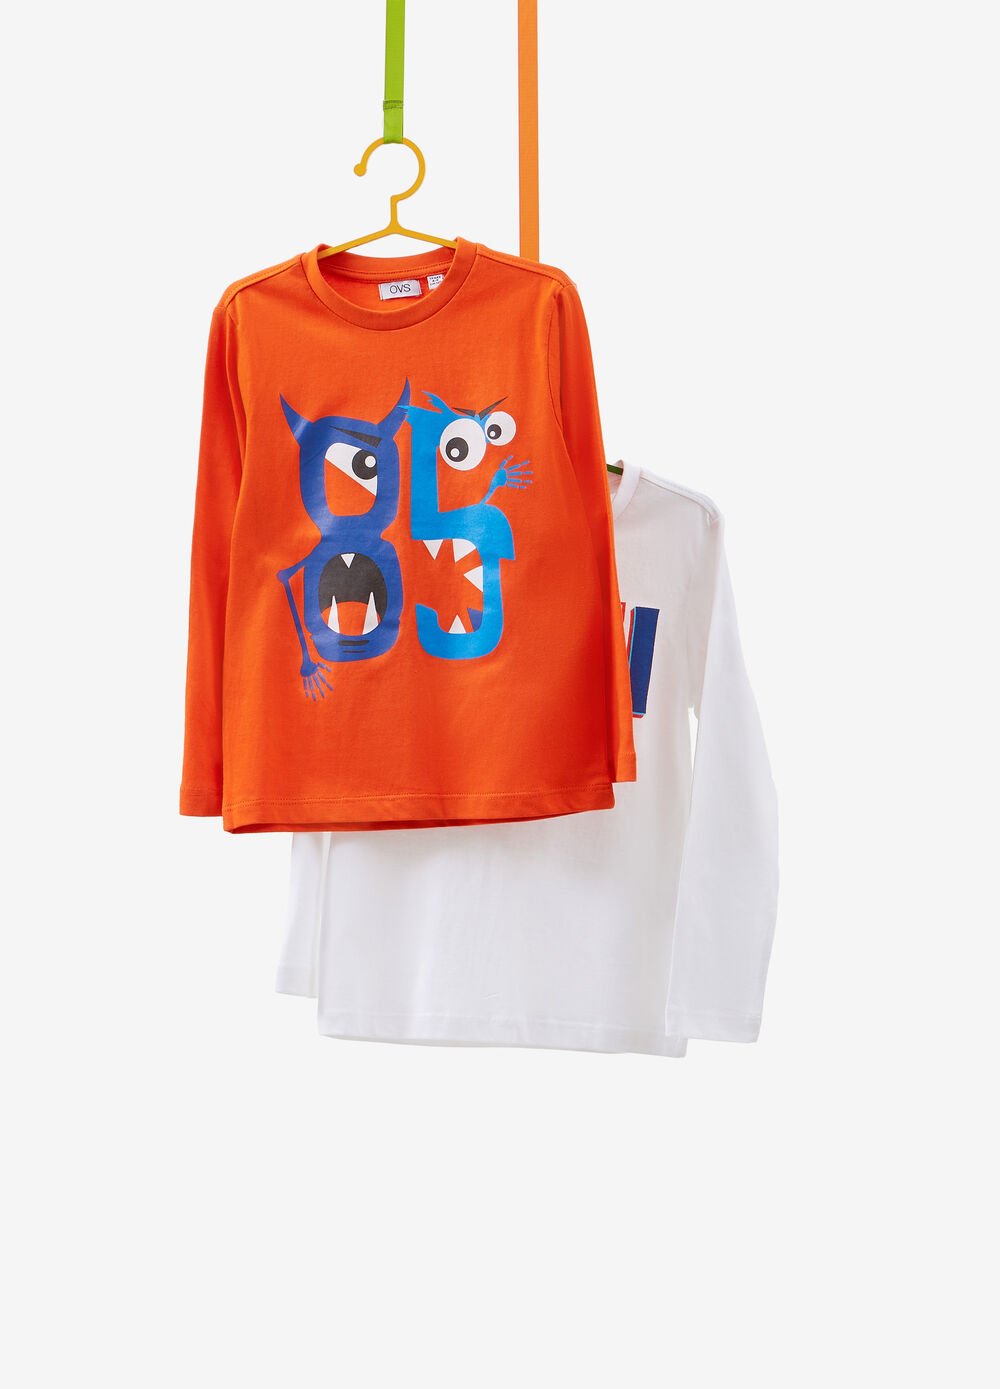 Set due t-shirt in puro cotone stampa